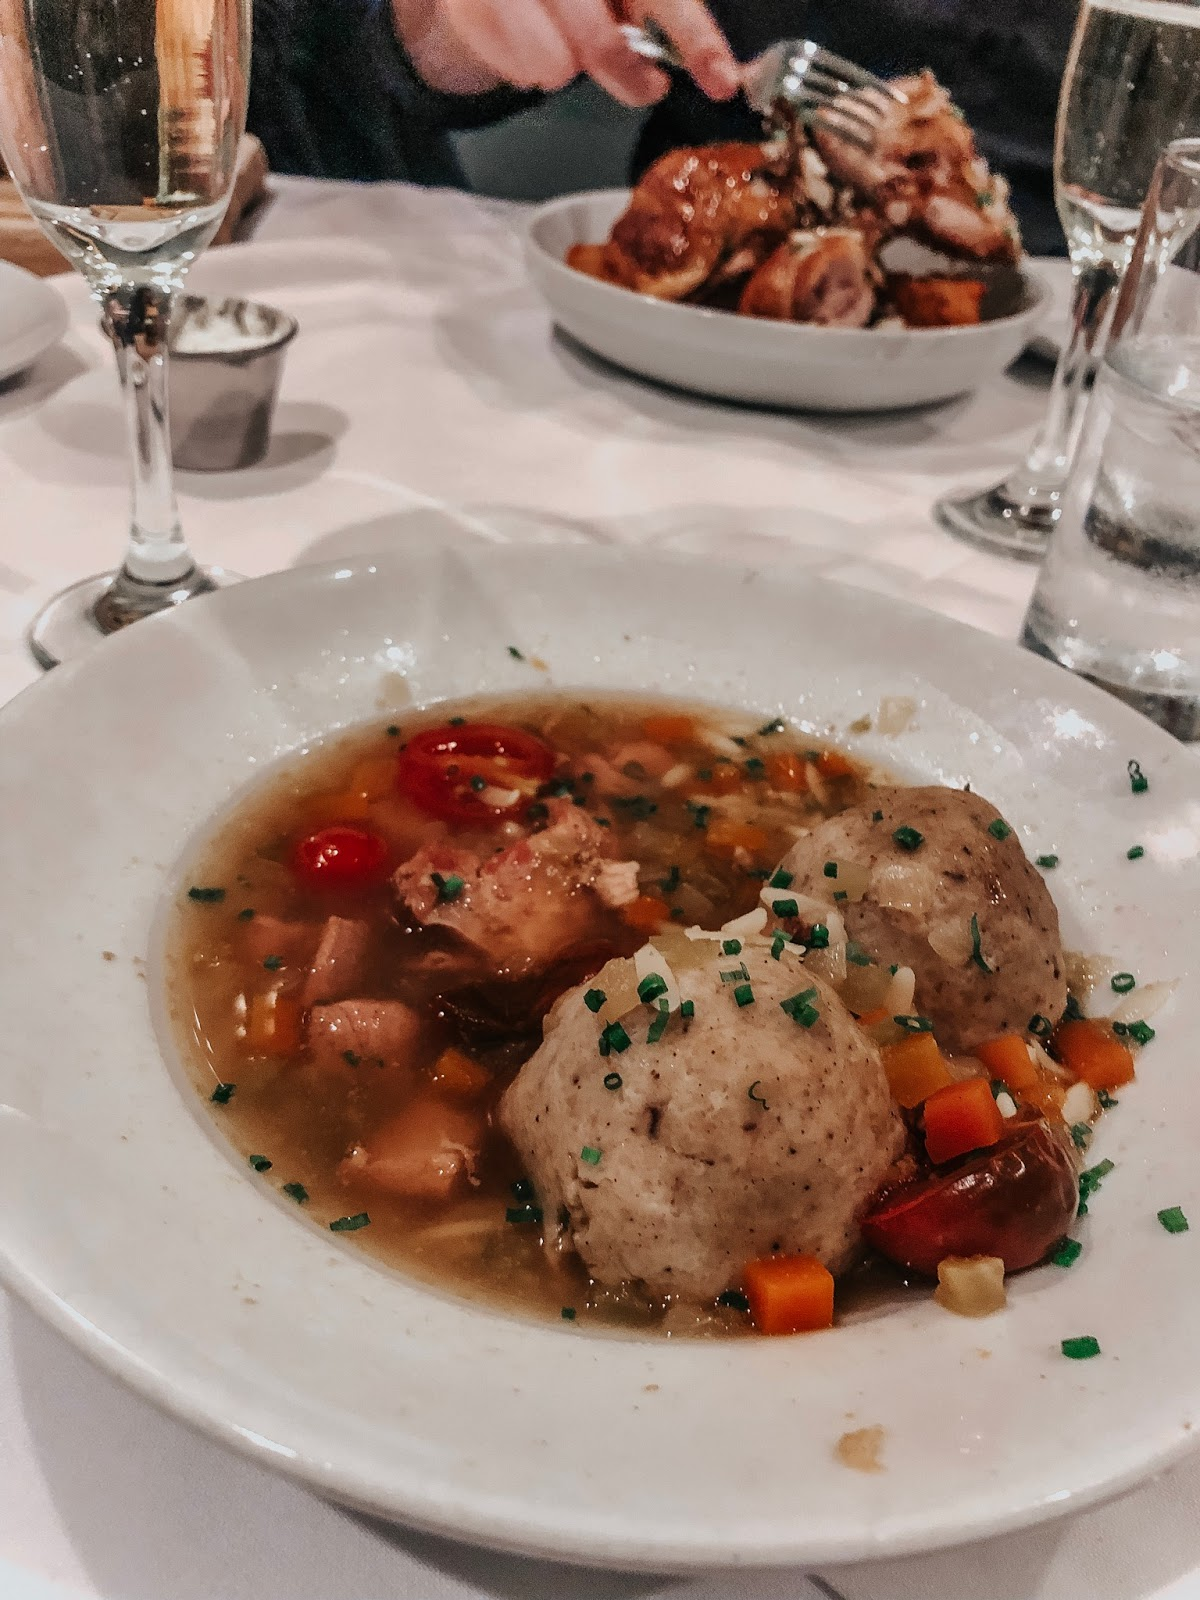 Matzo Ball & Roast Chicken Soup for dinner from Luke's in New Orleans